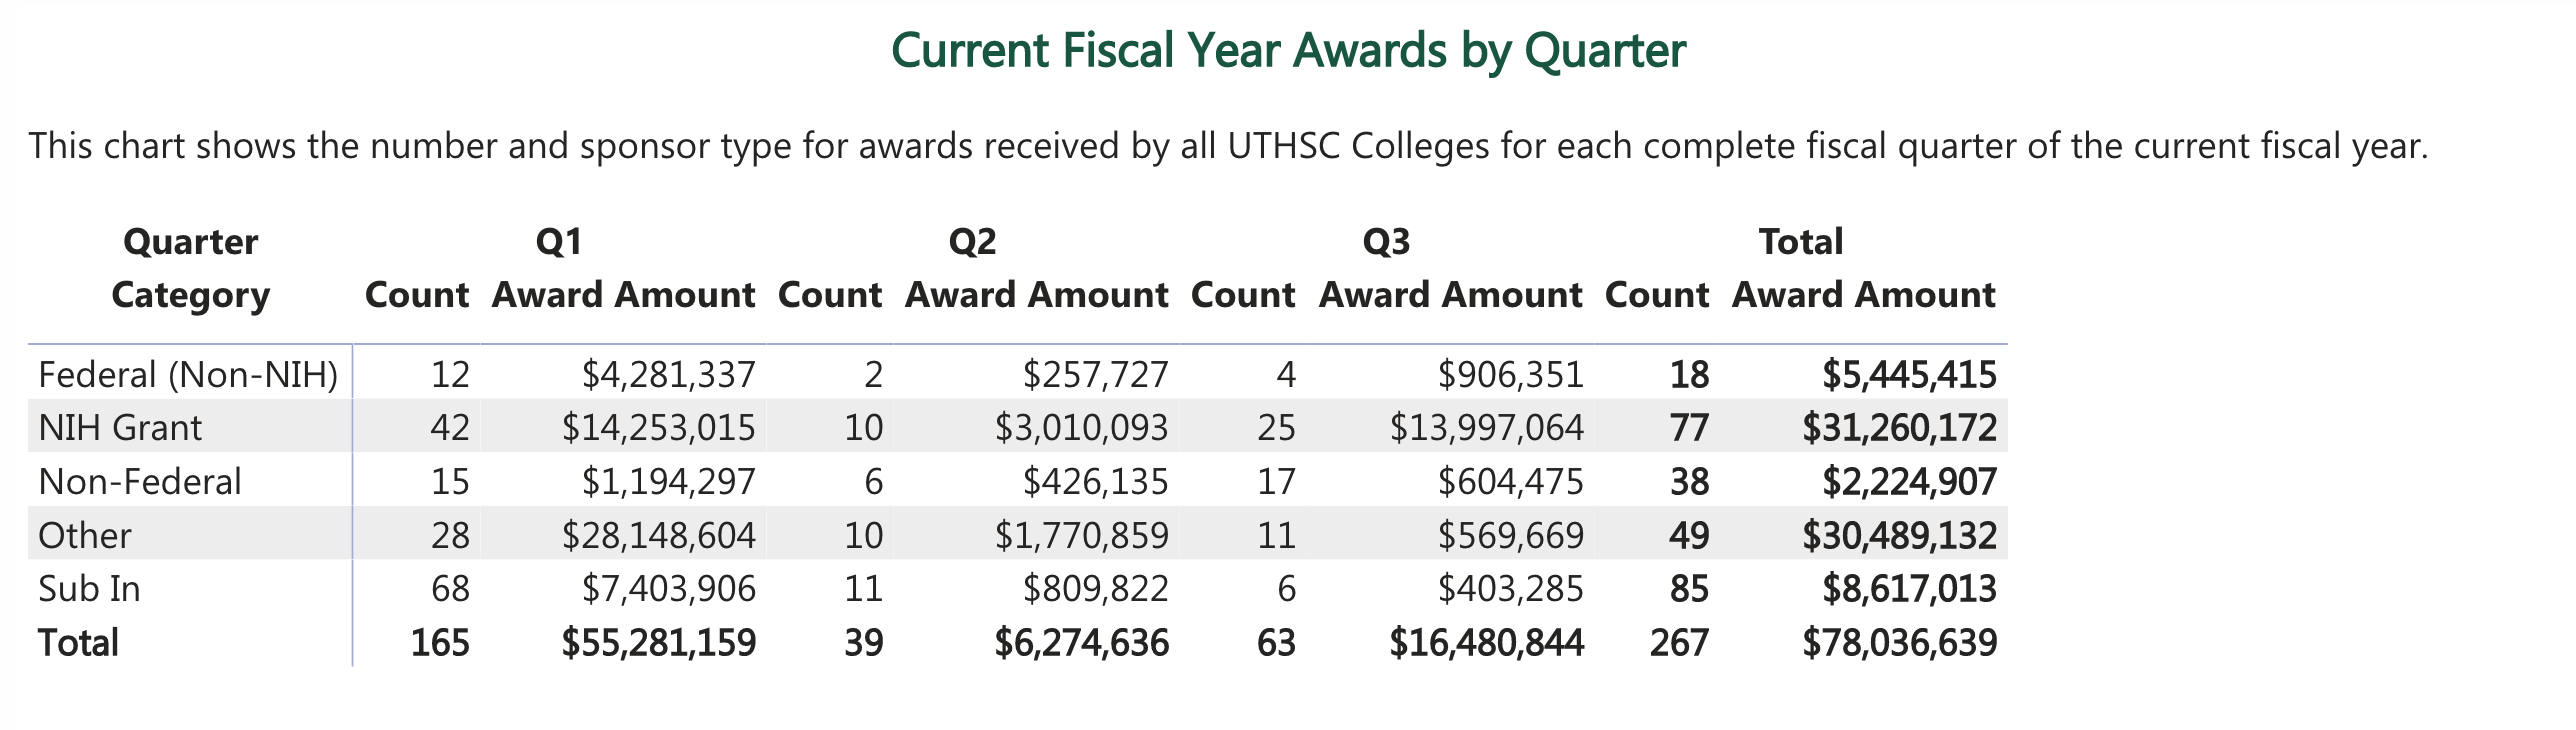 Current Fiscal Year Awards by Quarter